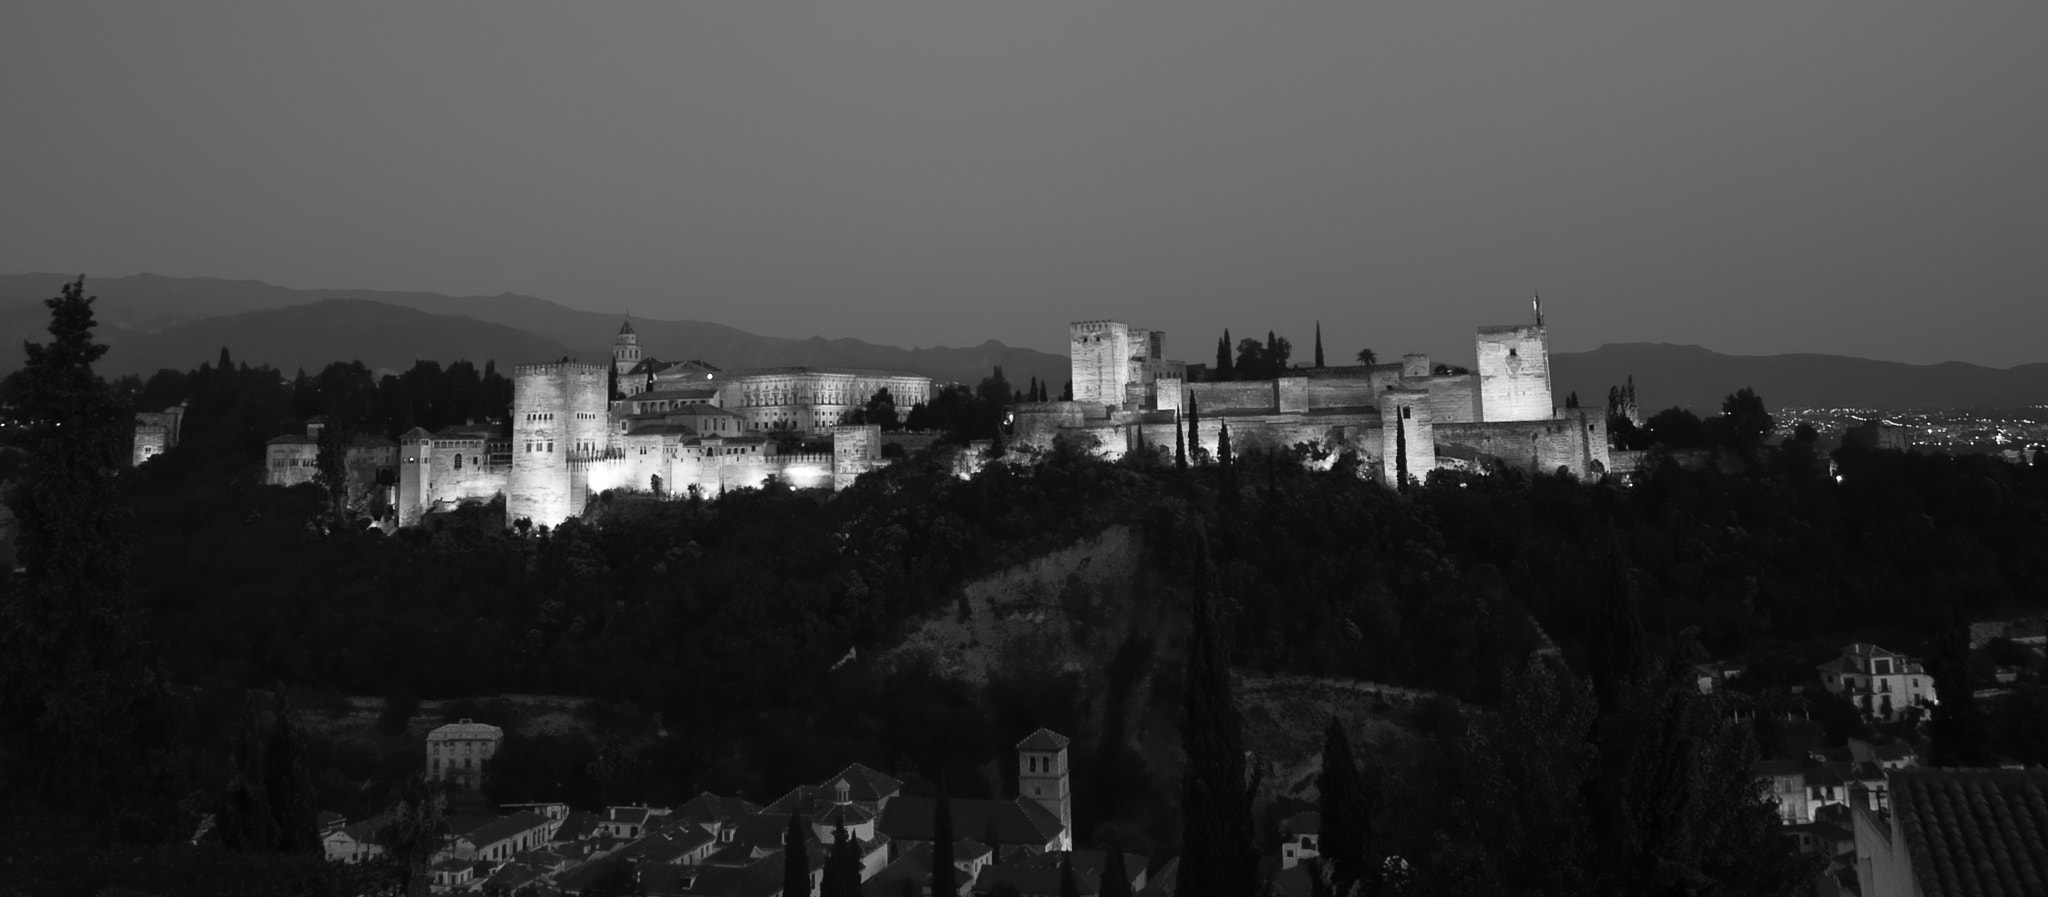 Photograph La Alhambra nocturna by Little Lune on 500px